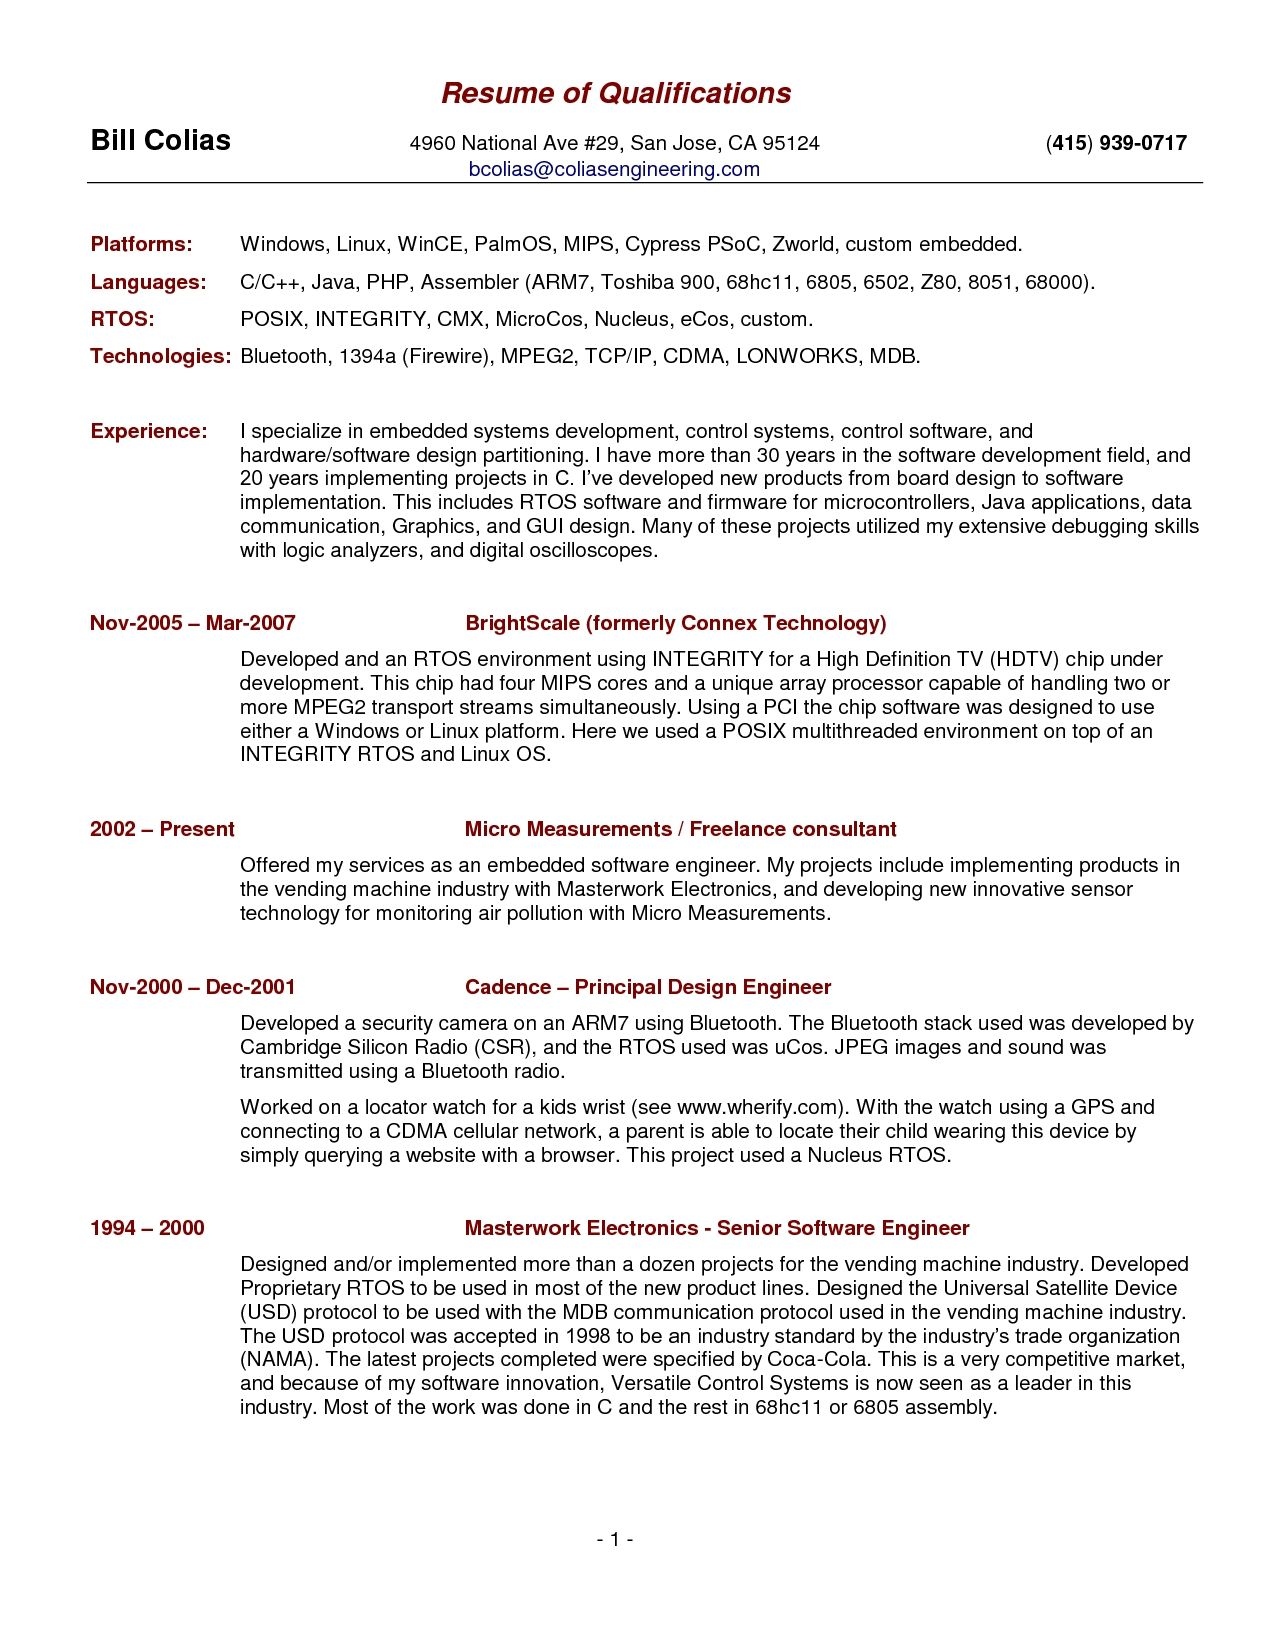 Examples Of A Resume Qualifications For A Resume Examples 7F8Ea3A2A New Resume Skills